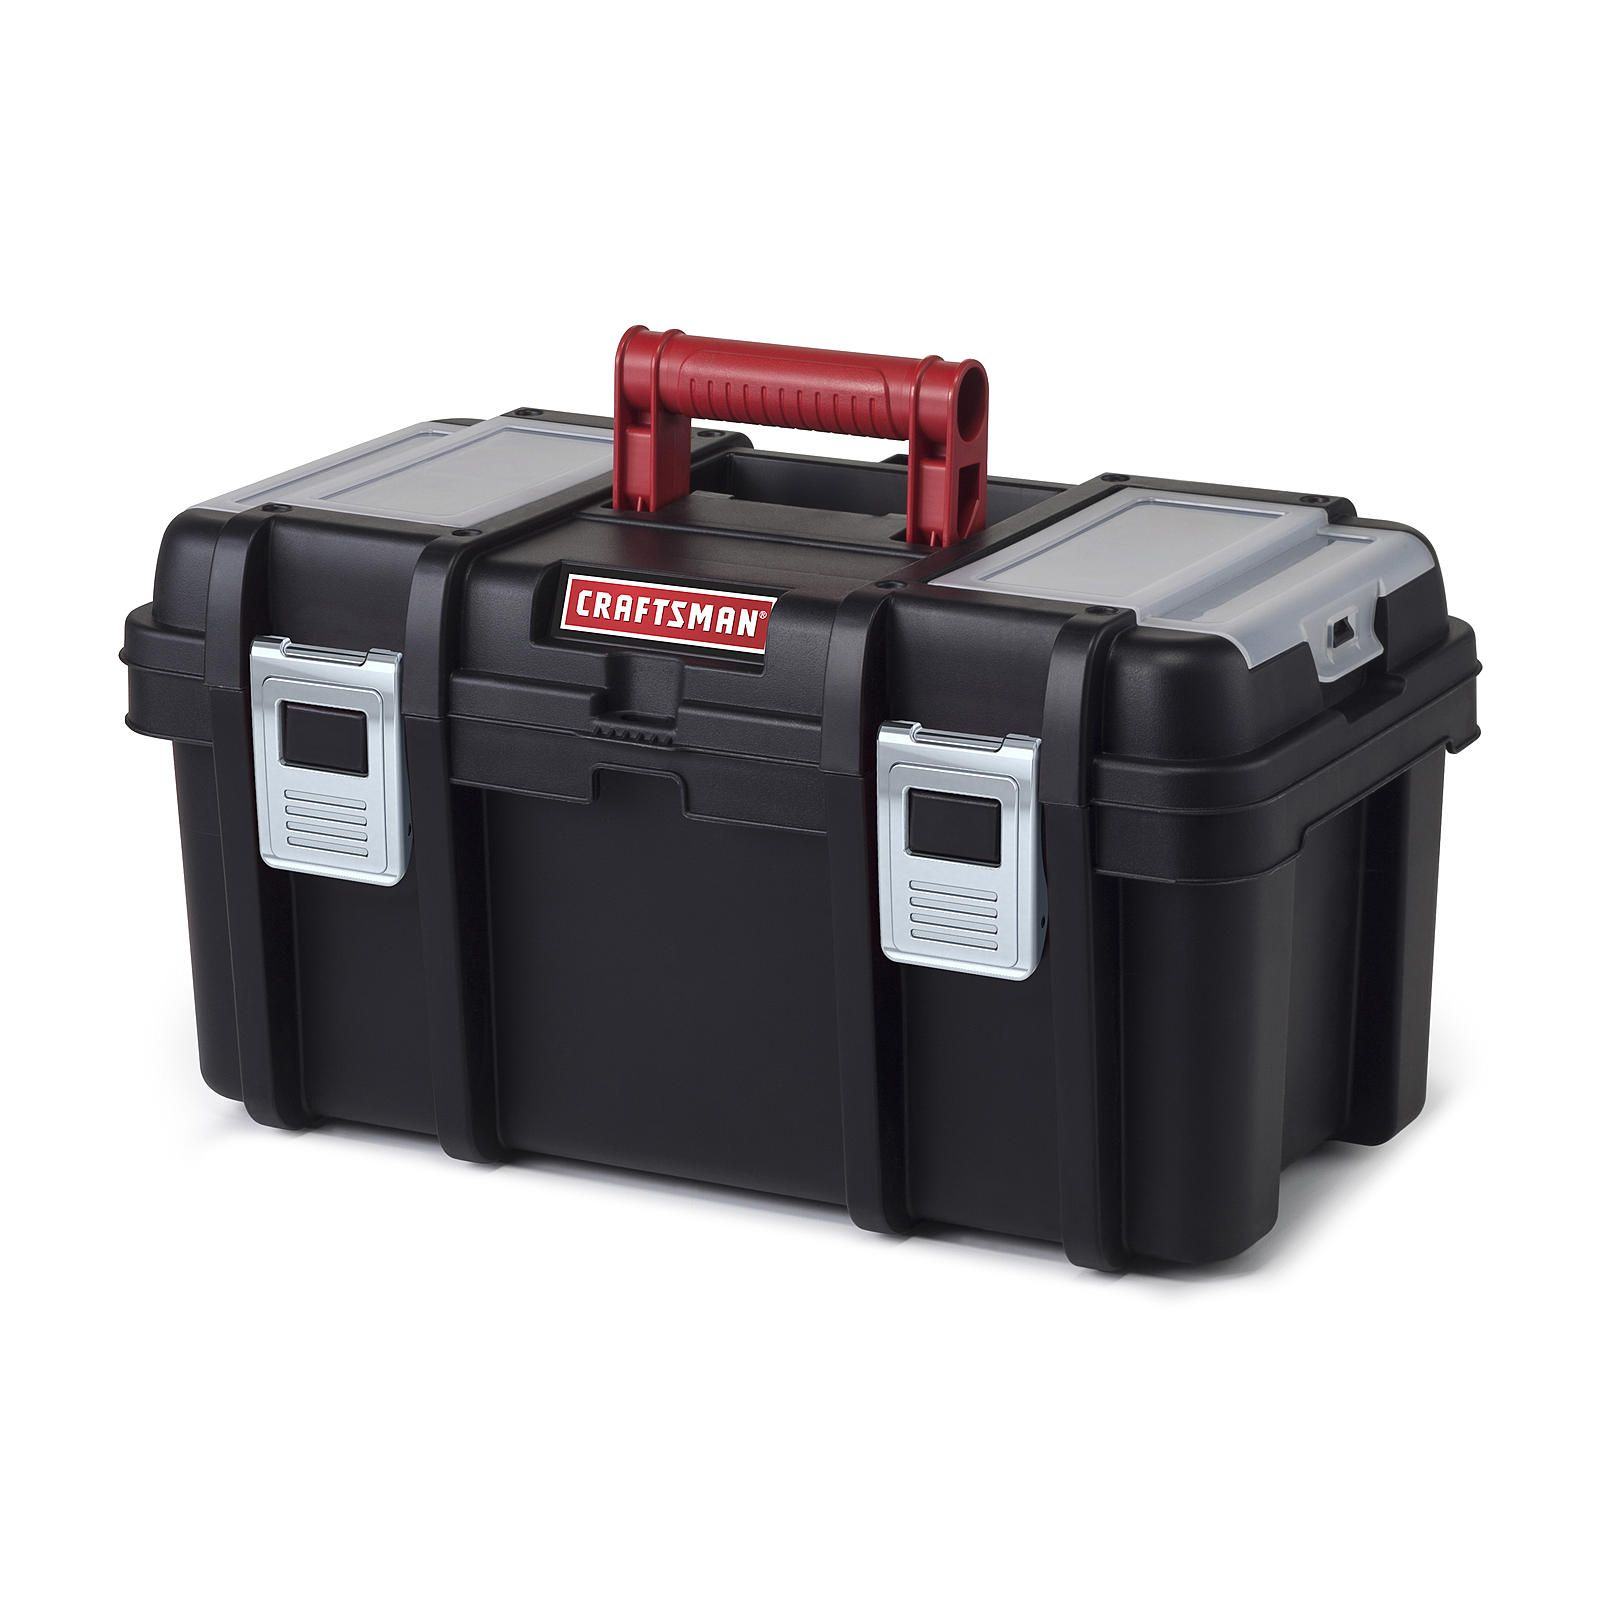 Craftsman 16 Inch Tool Box with Tray Black/Red Tools